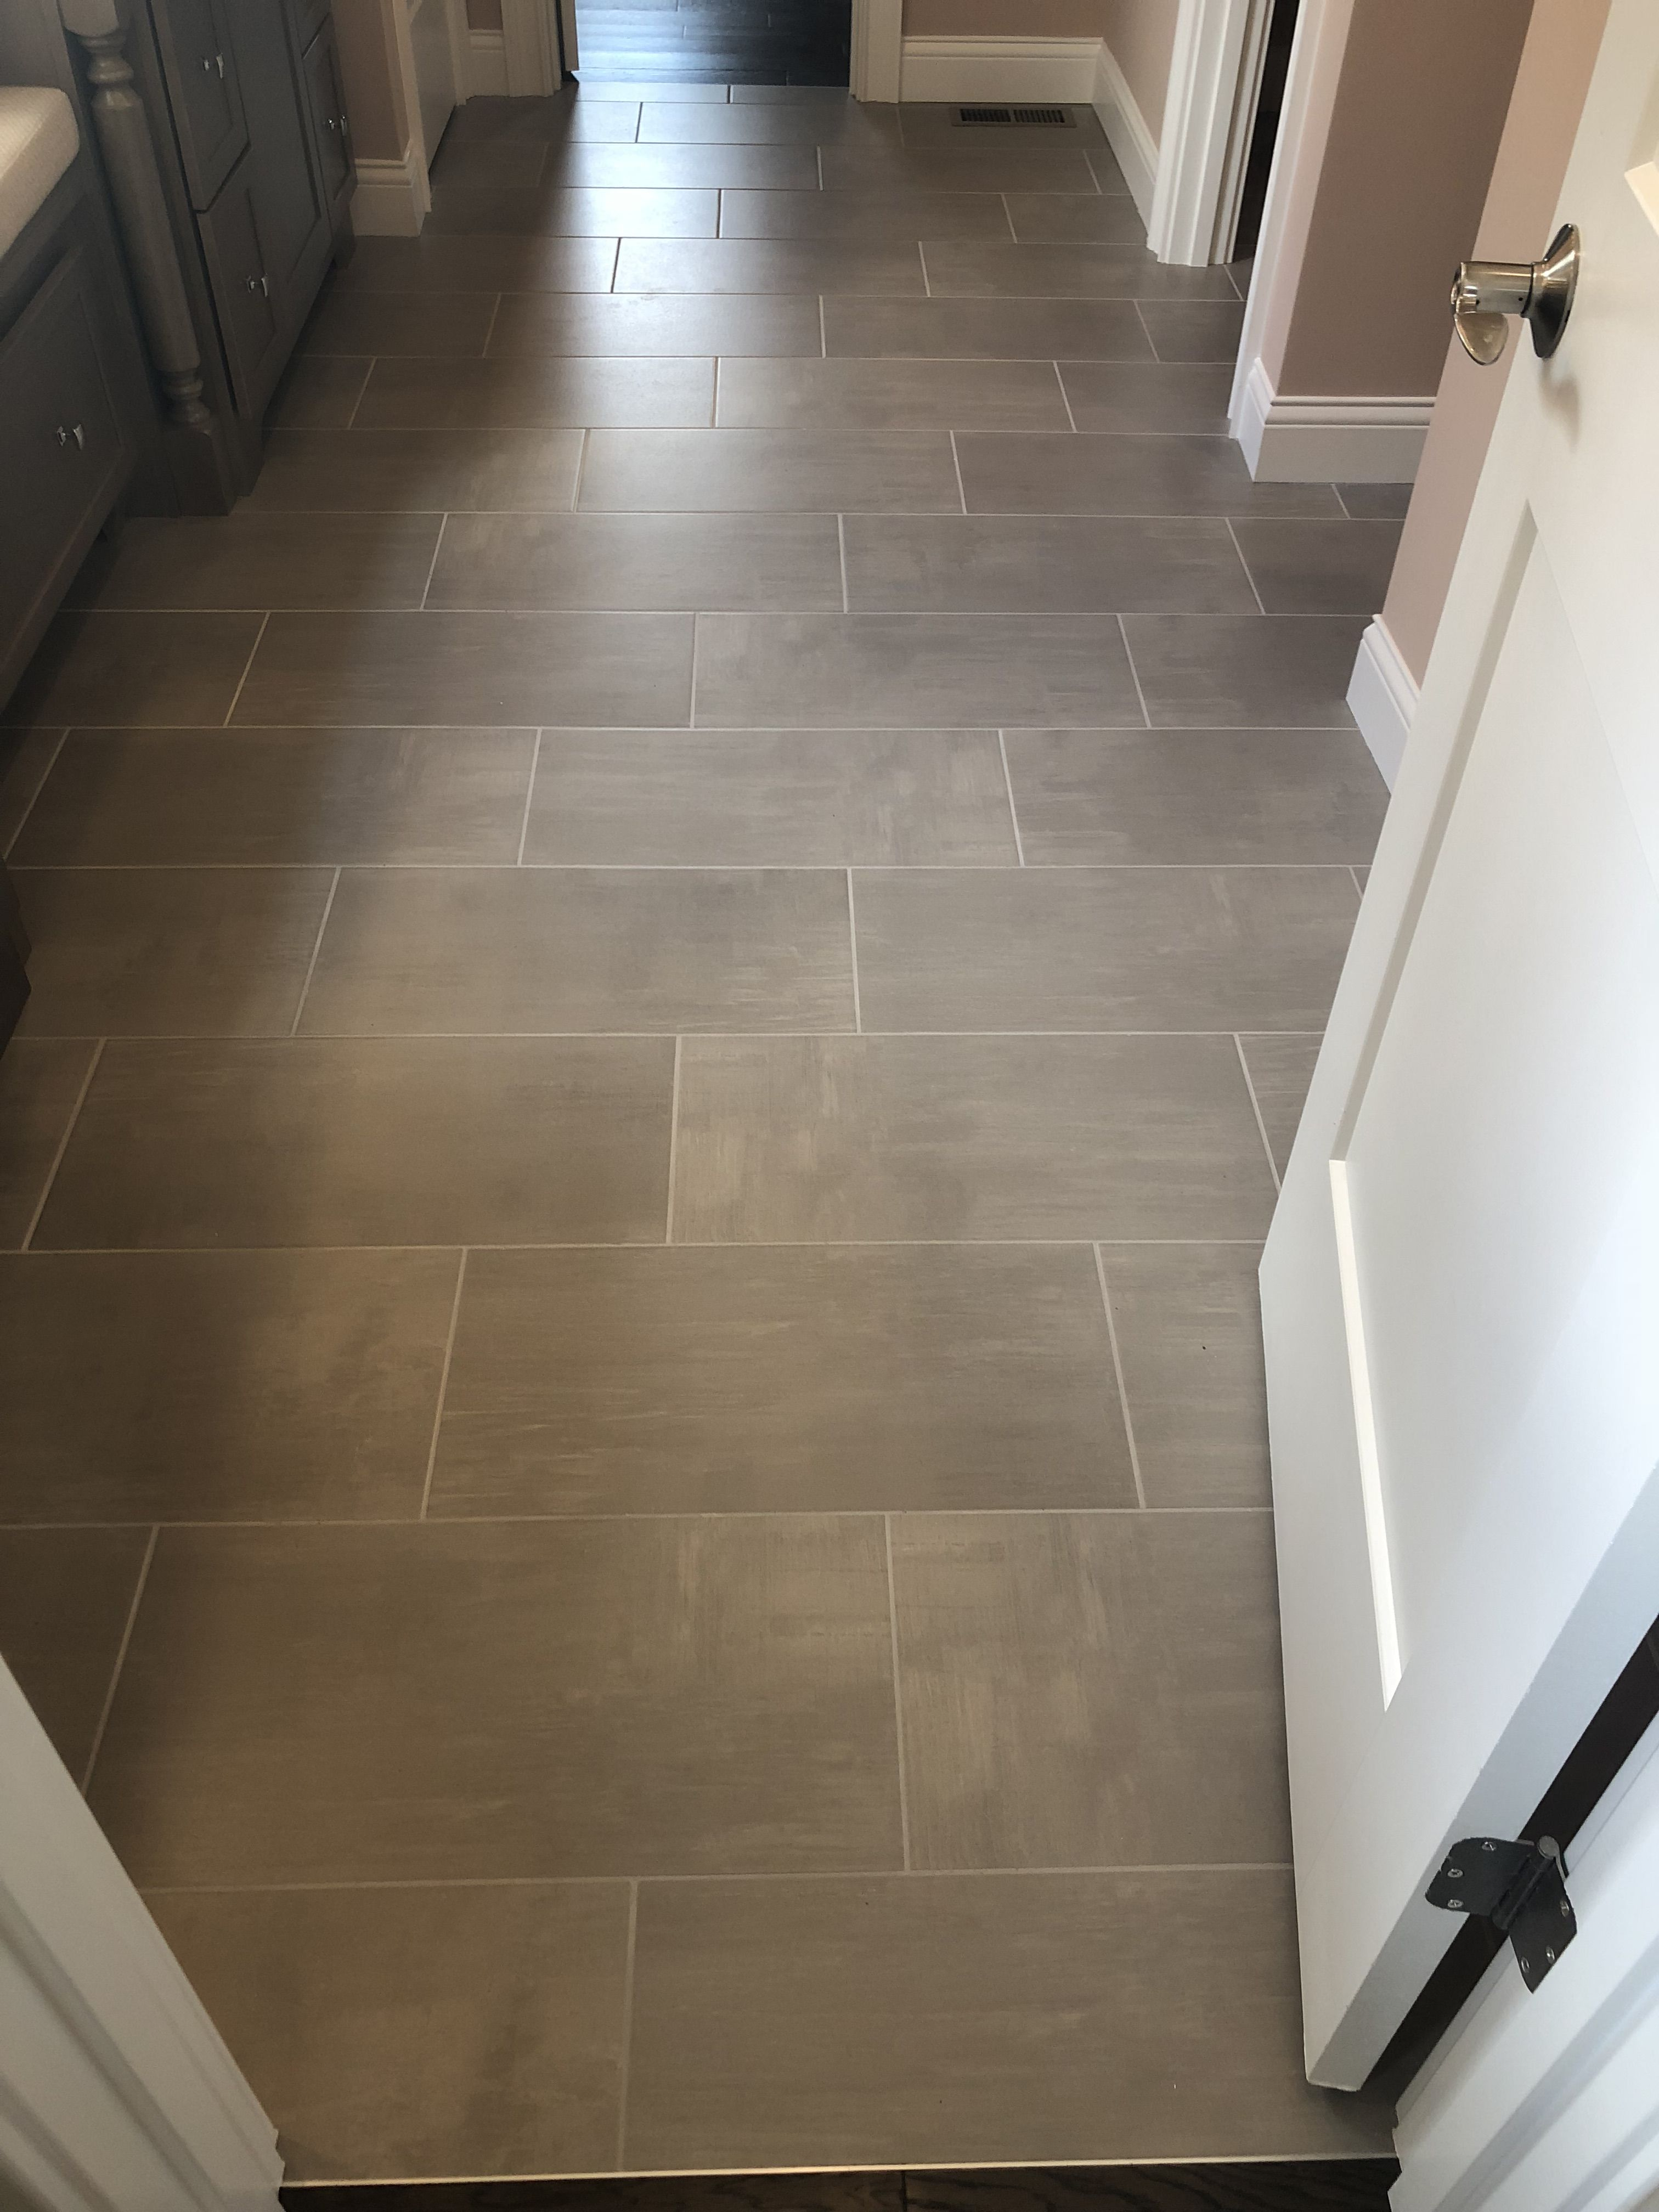 Skybridge 12x24 Gray Floor Tile Tile Floor Bathroom Floor Tiles